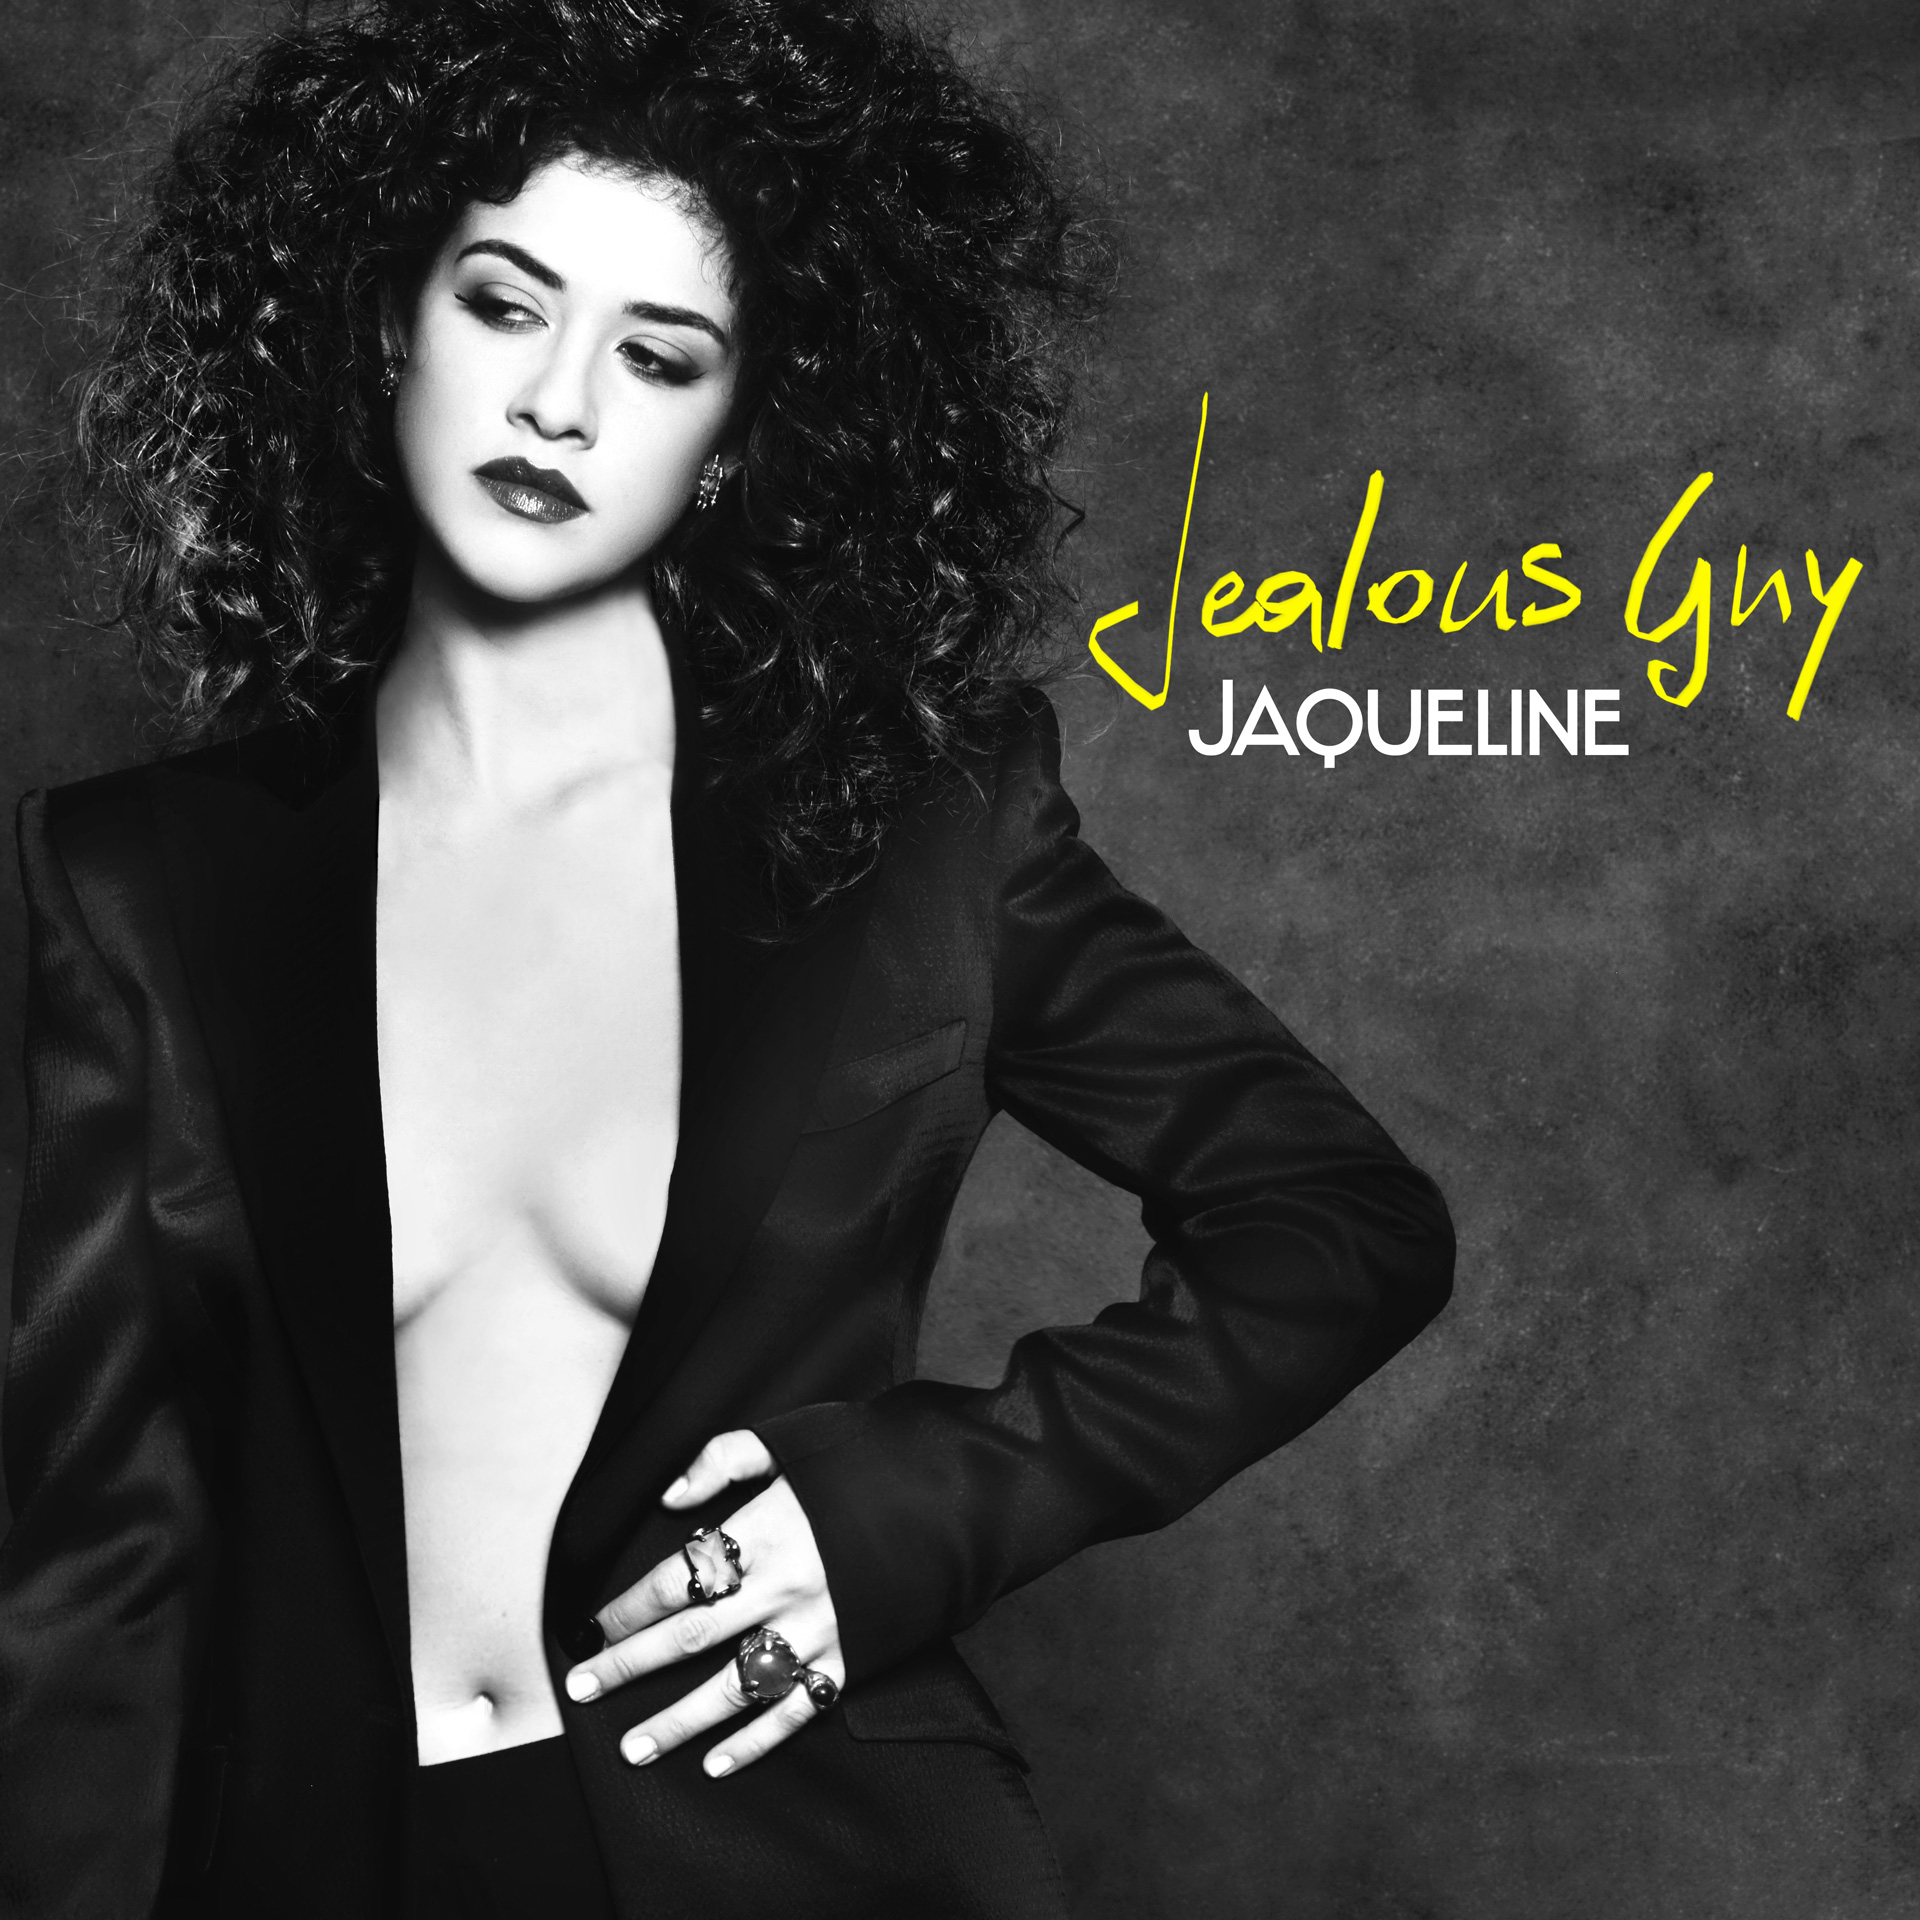 JAQUELINE E' IN RADIO E IN DIGITALE CON IL NUOVO SINGOLO JEALOUS GUY